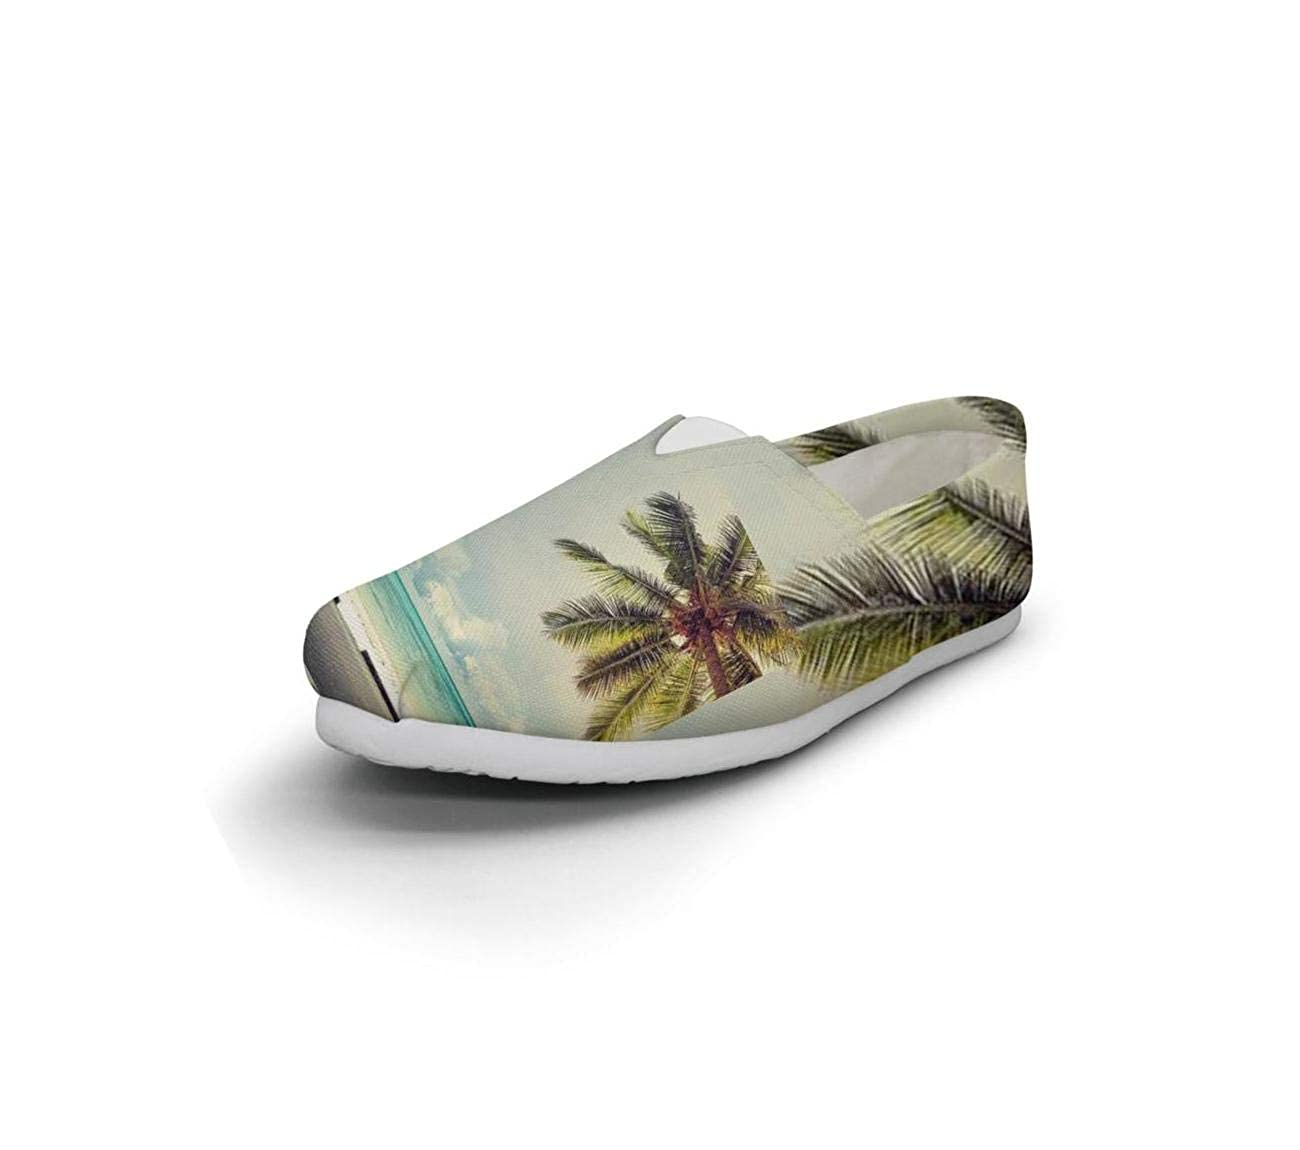 nkfbx Ocean Beach Palm Tree Coconut Tree Bus Fashion Flat Canva Shoes for Girls Exercising